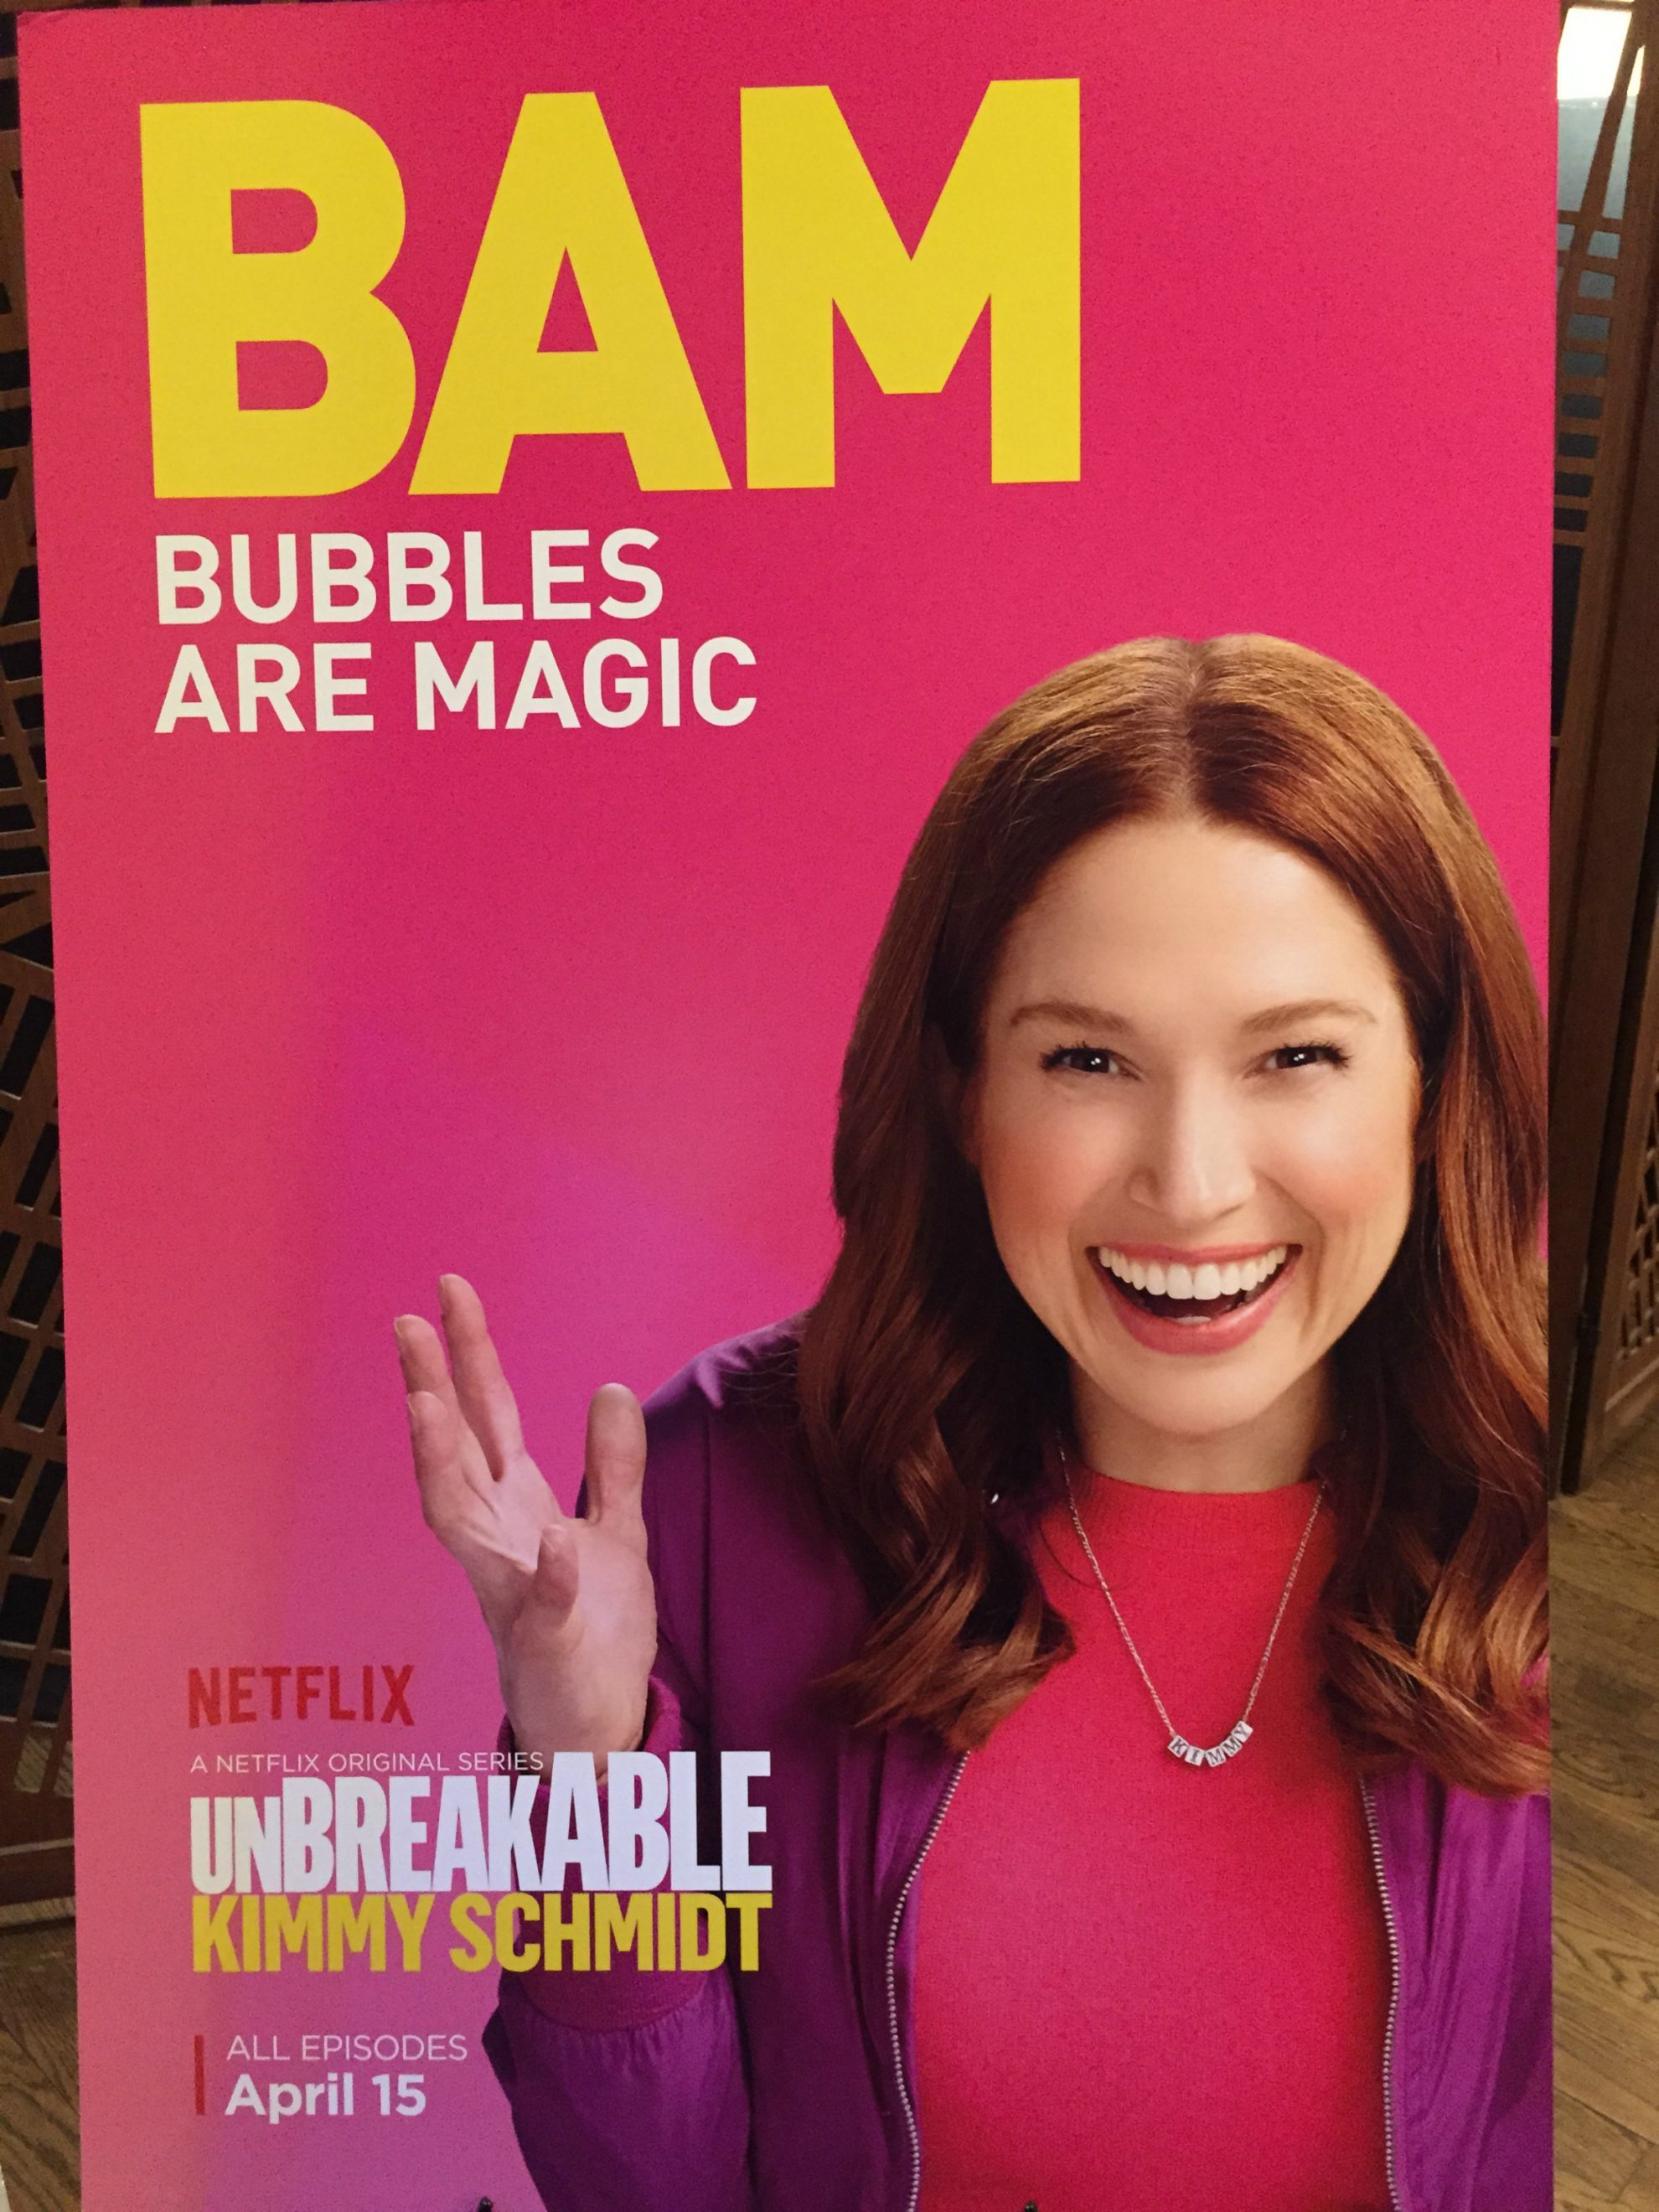 We've got a TOTALLY KimmyTastic Unbreakable Kimmy Schmidt Giveaway to celebrate Season 2!